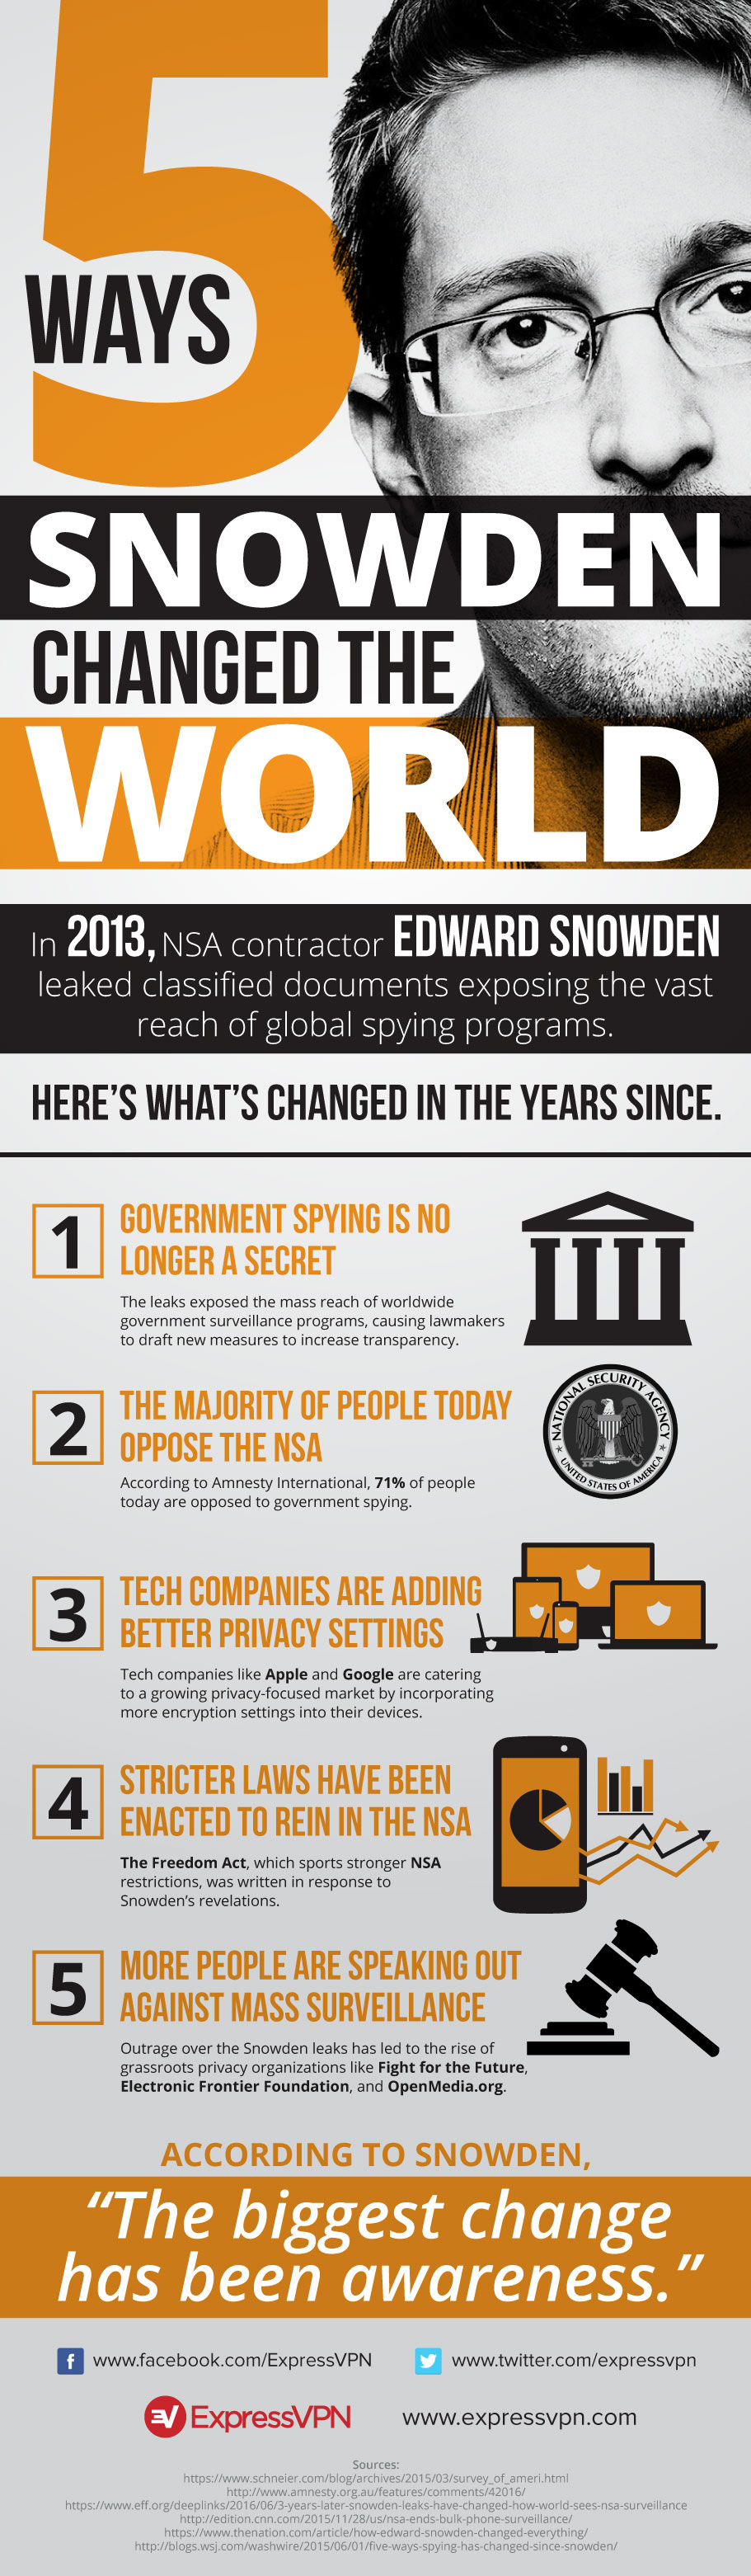 ExpressVPN com - 5 Ways Snowden changed the world